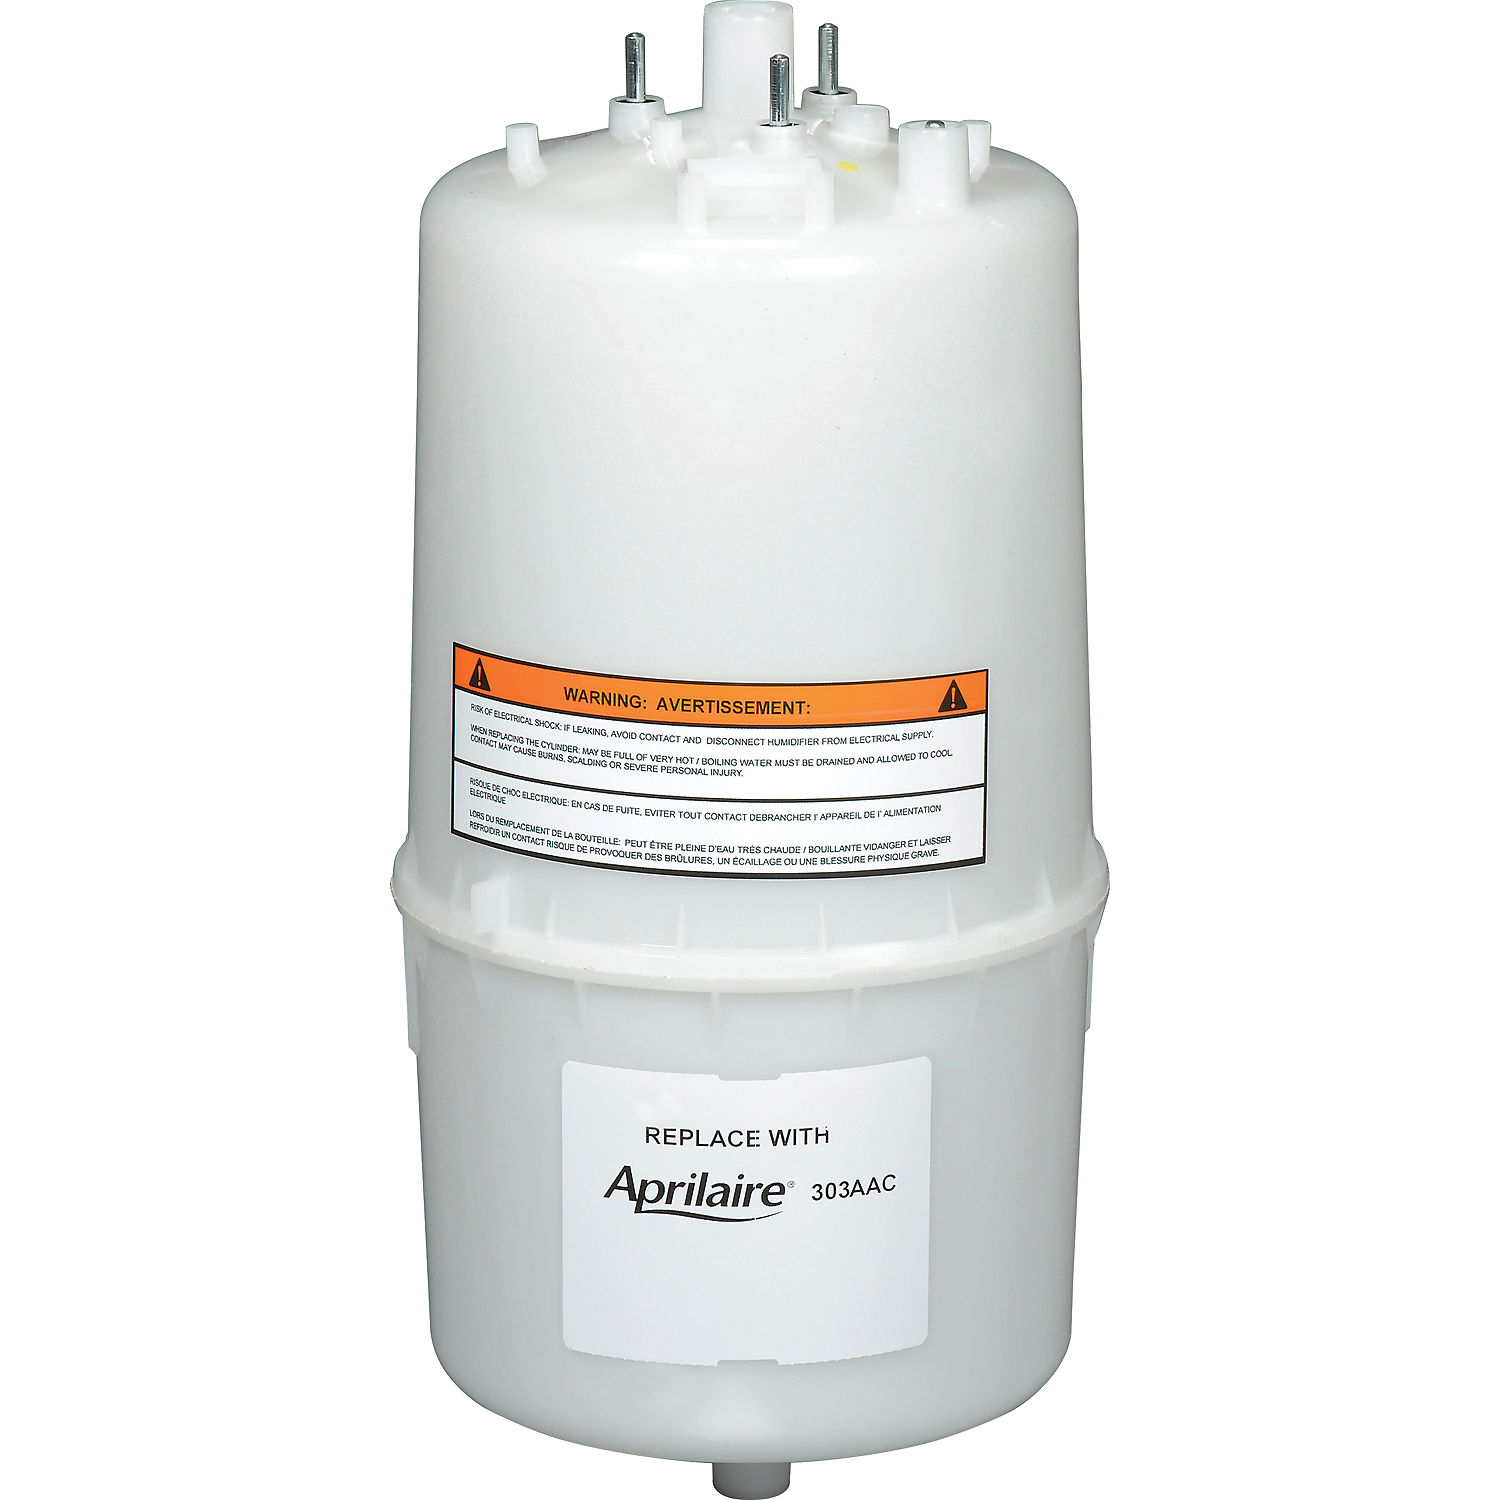 Aprilaire Replacement Steam Cylinder 303AAC, For Nortec Humidifiers